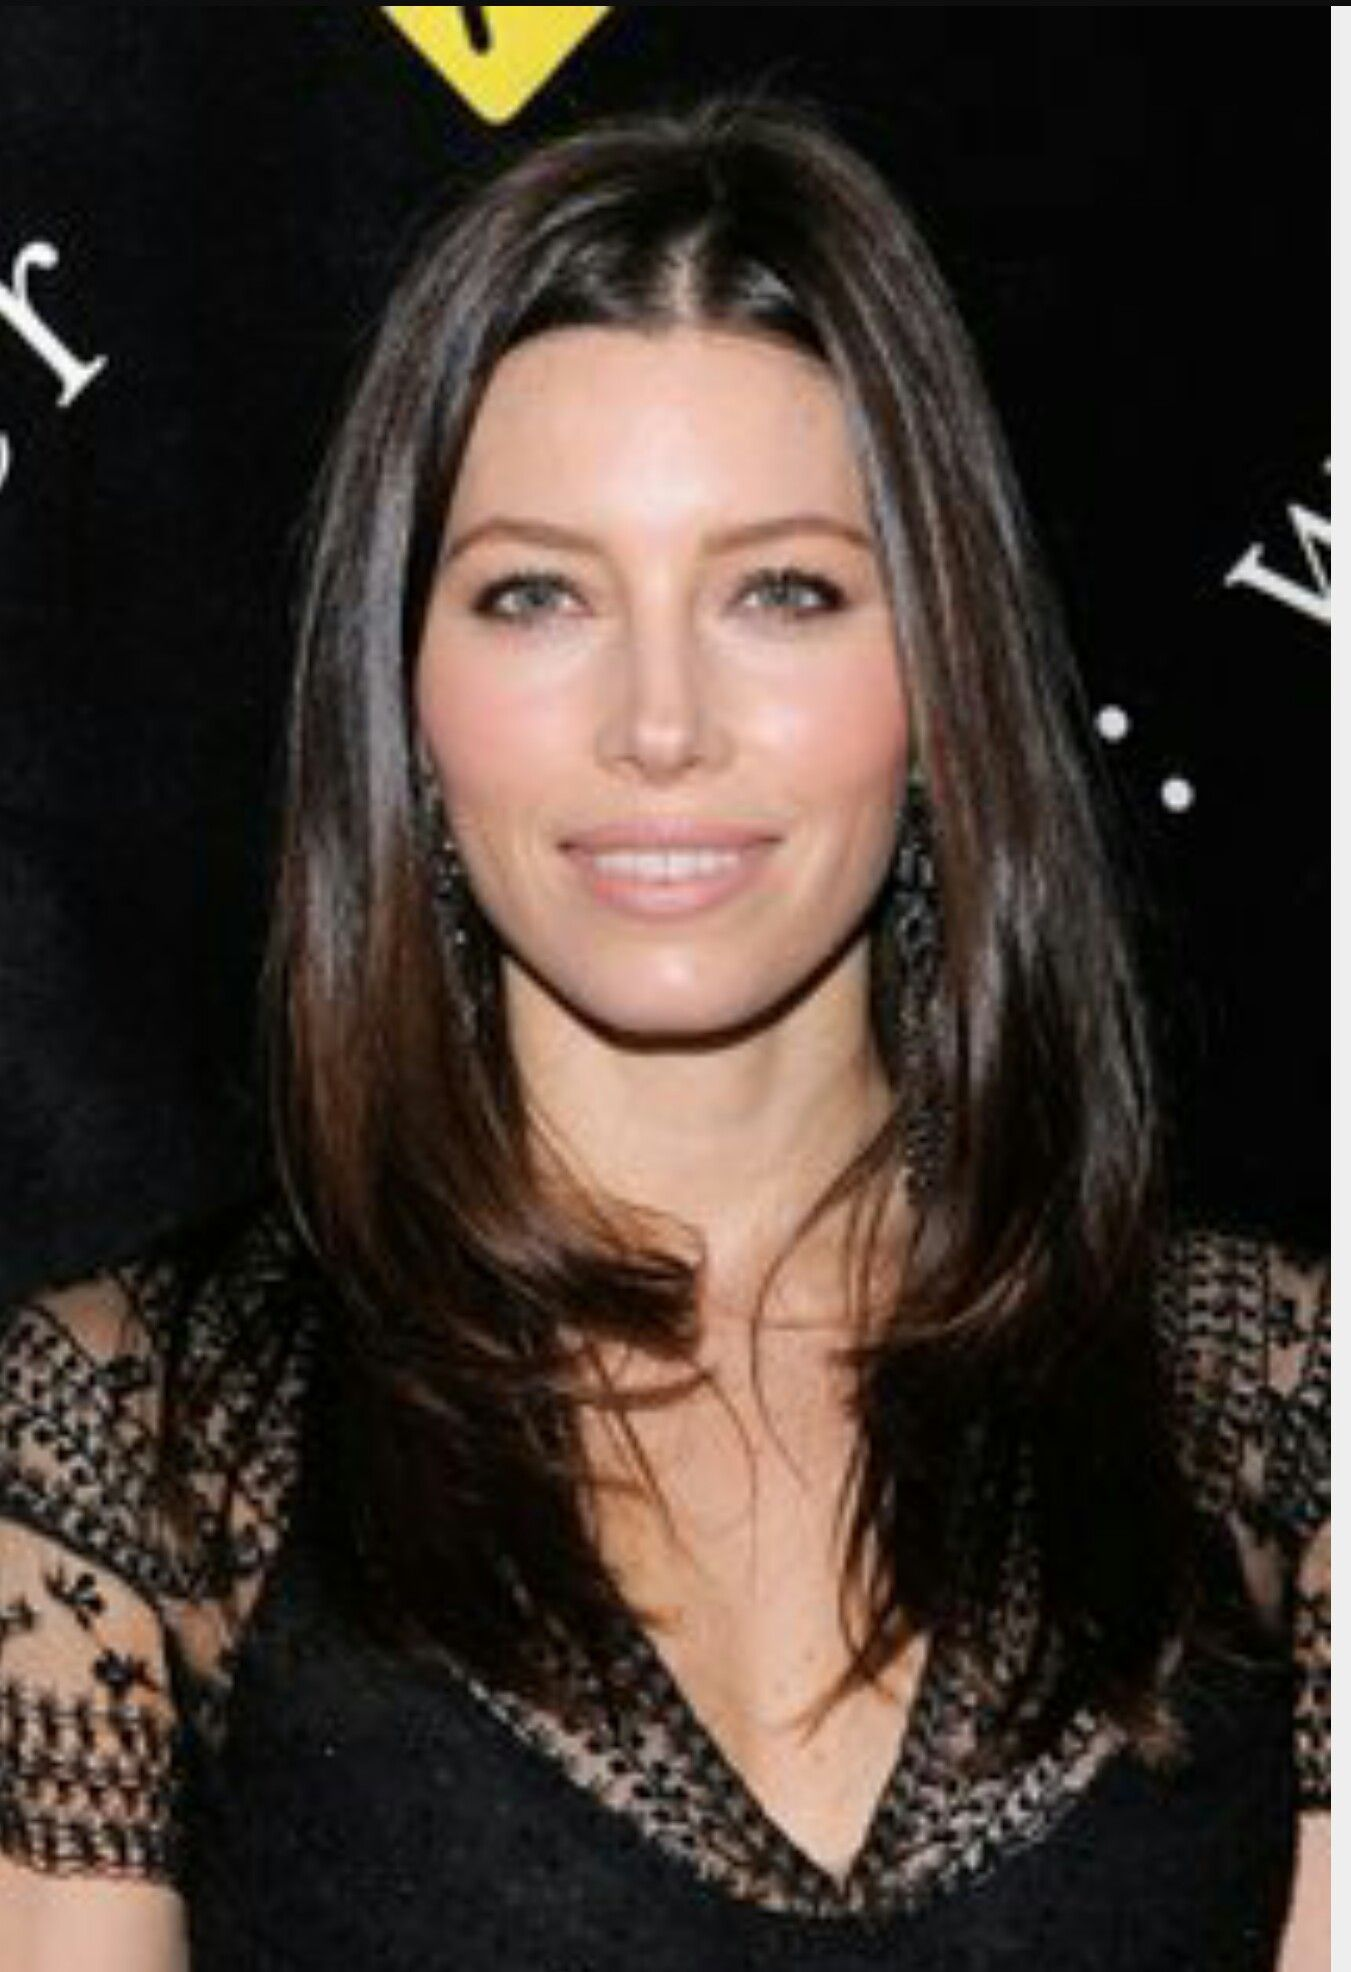 Heroine haircut images pin by jorge schumager on jessica biel  pinterest  jessica biel